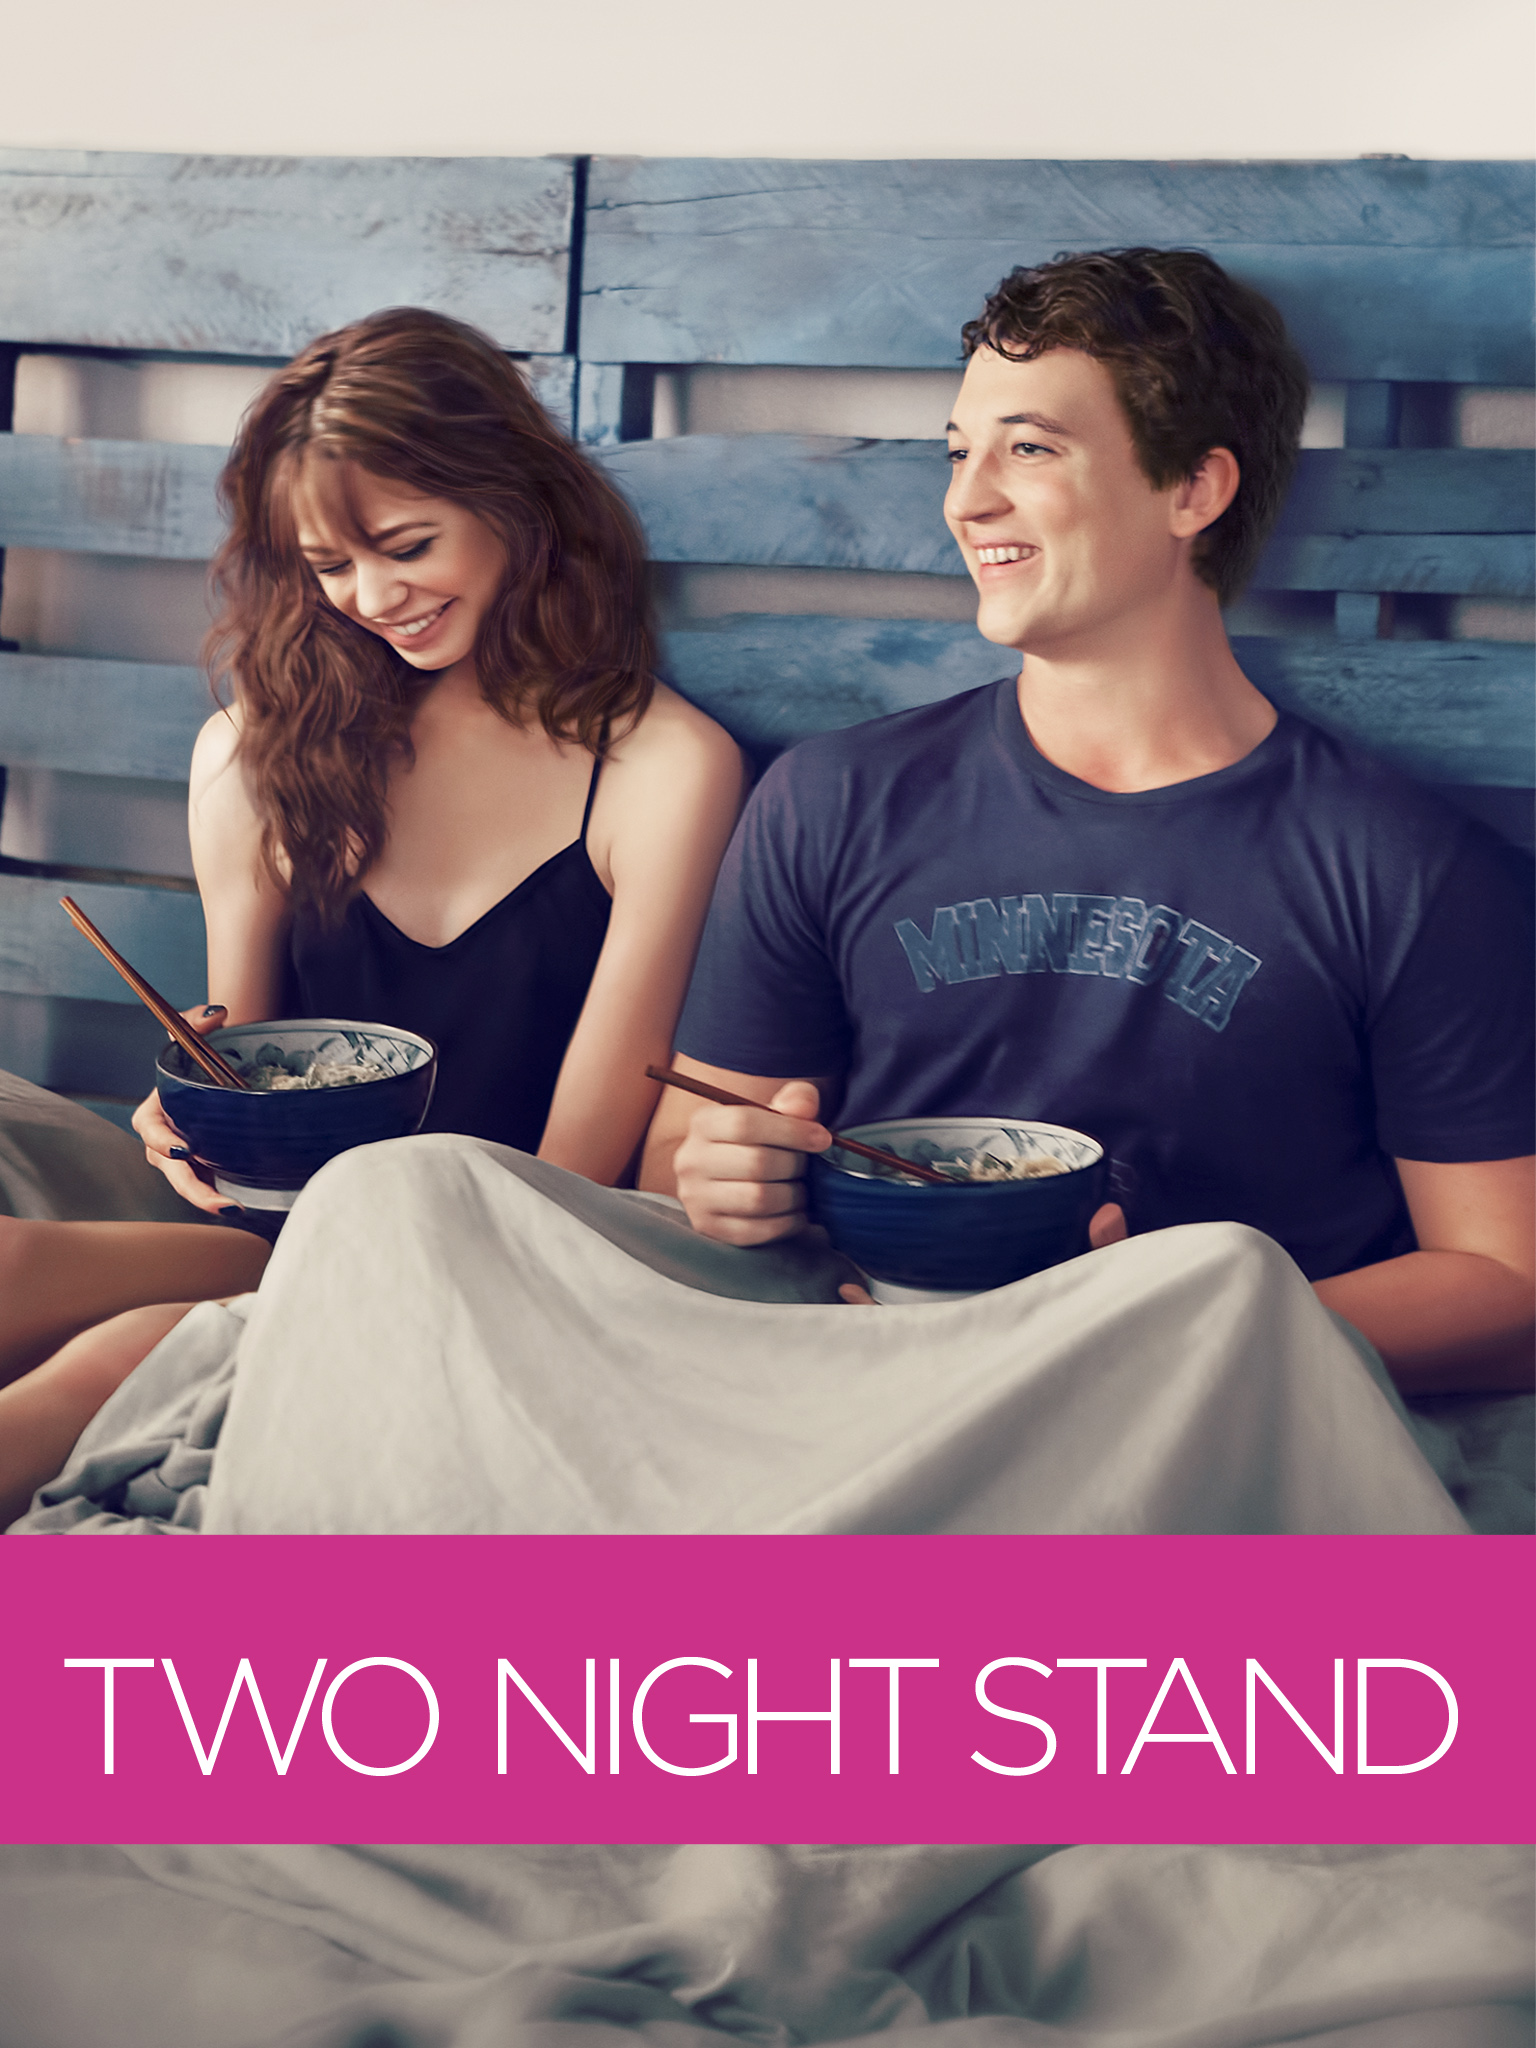 Watch Two Night Stand for Valentine's Day!